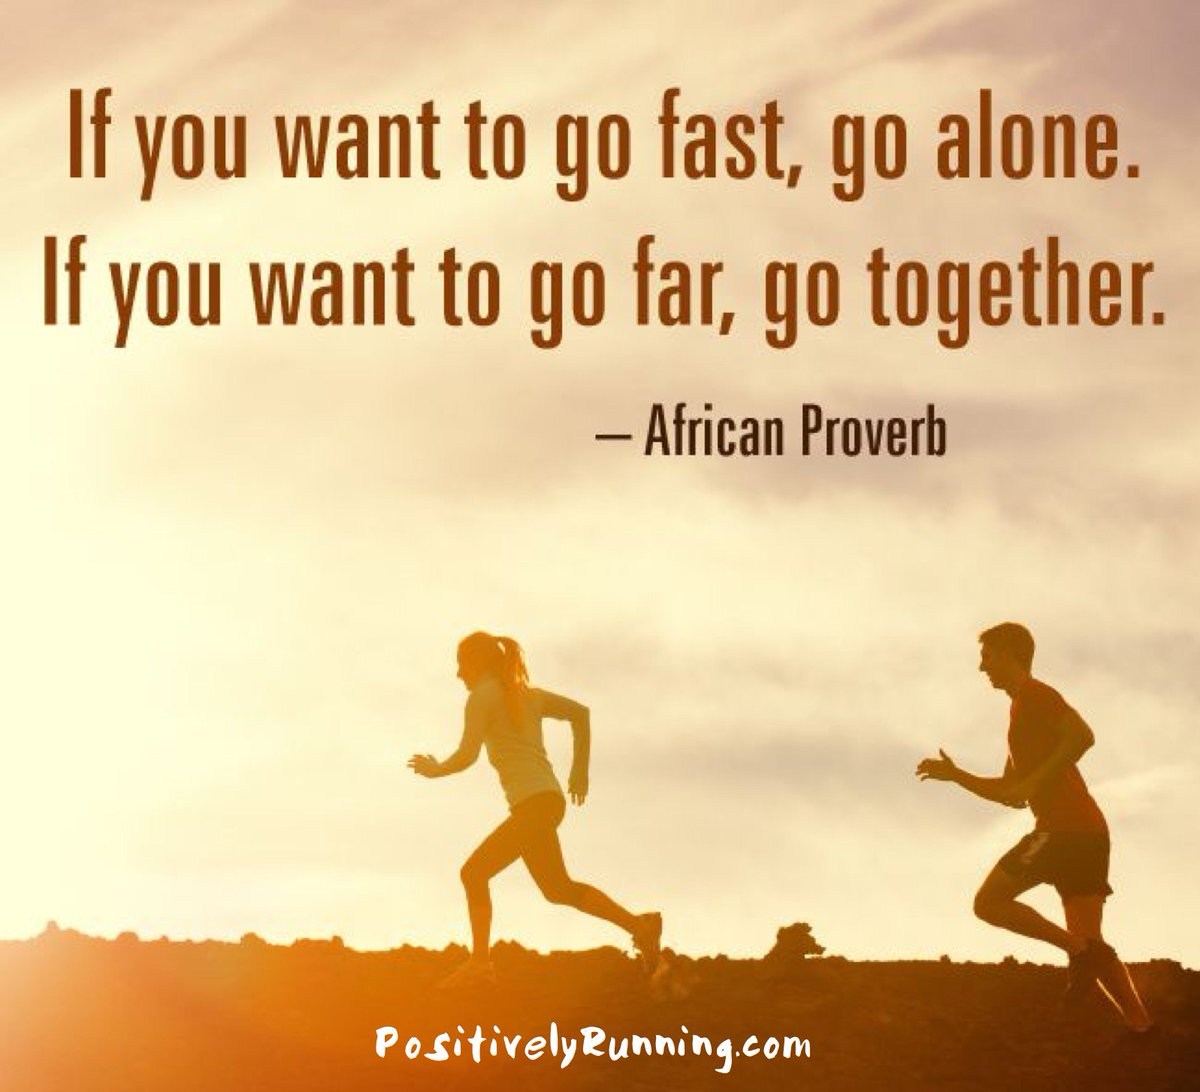 """If you want to go fast, go alone. If you want to go far, go together."" – African Proverb [1200 x 1092]"